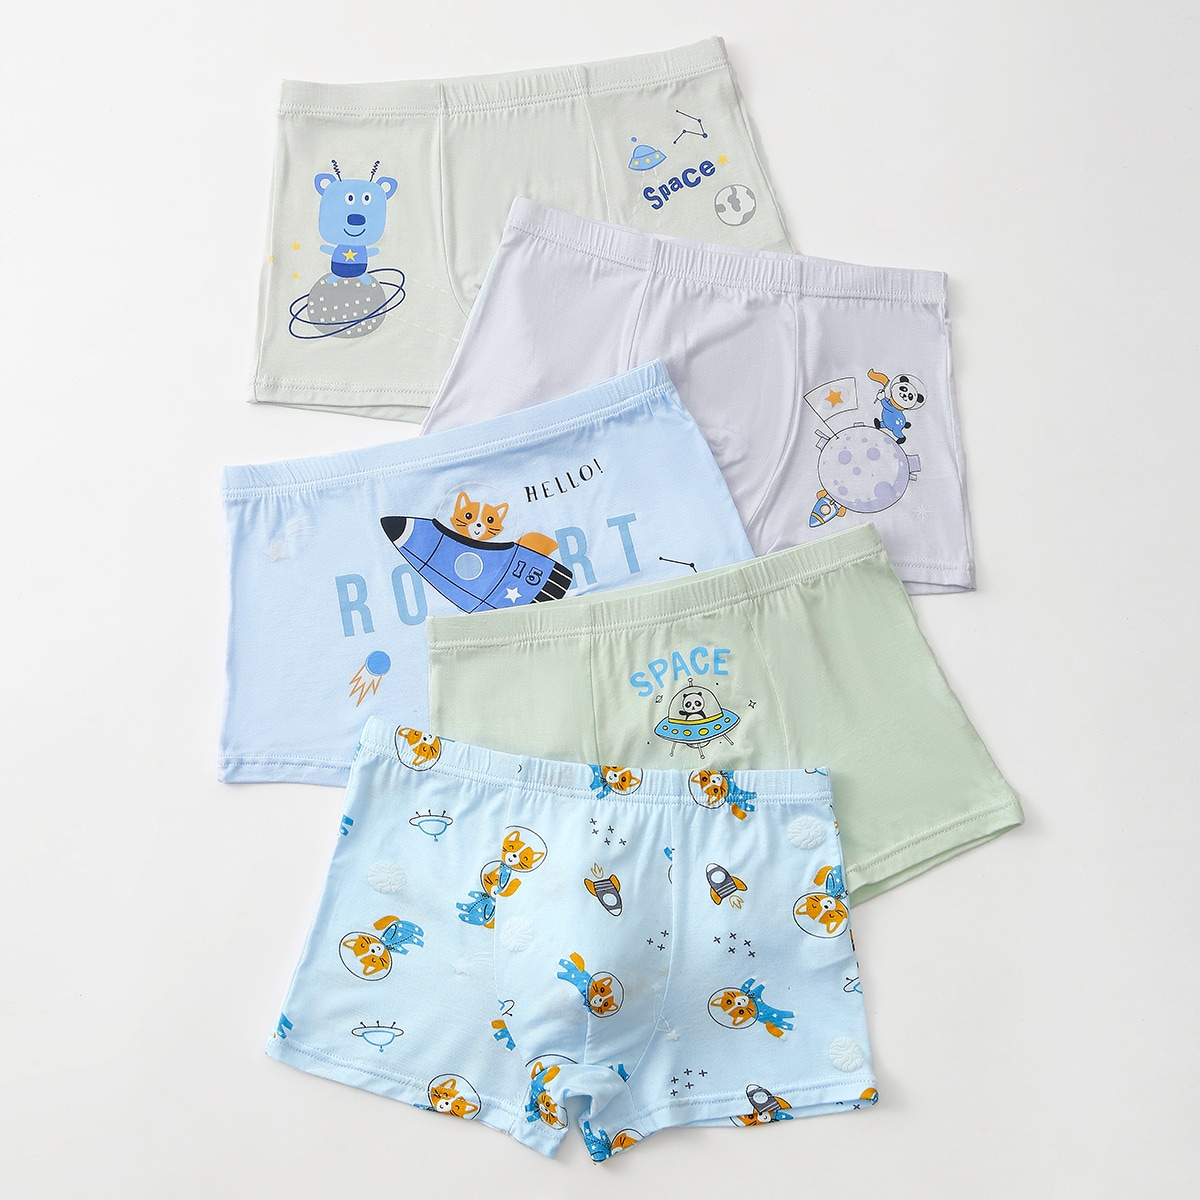 Toddler Boys Cartoon And Letter Graphic Boxer Brief, SHEIN  - buy with discount